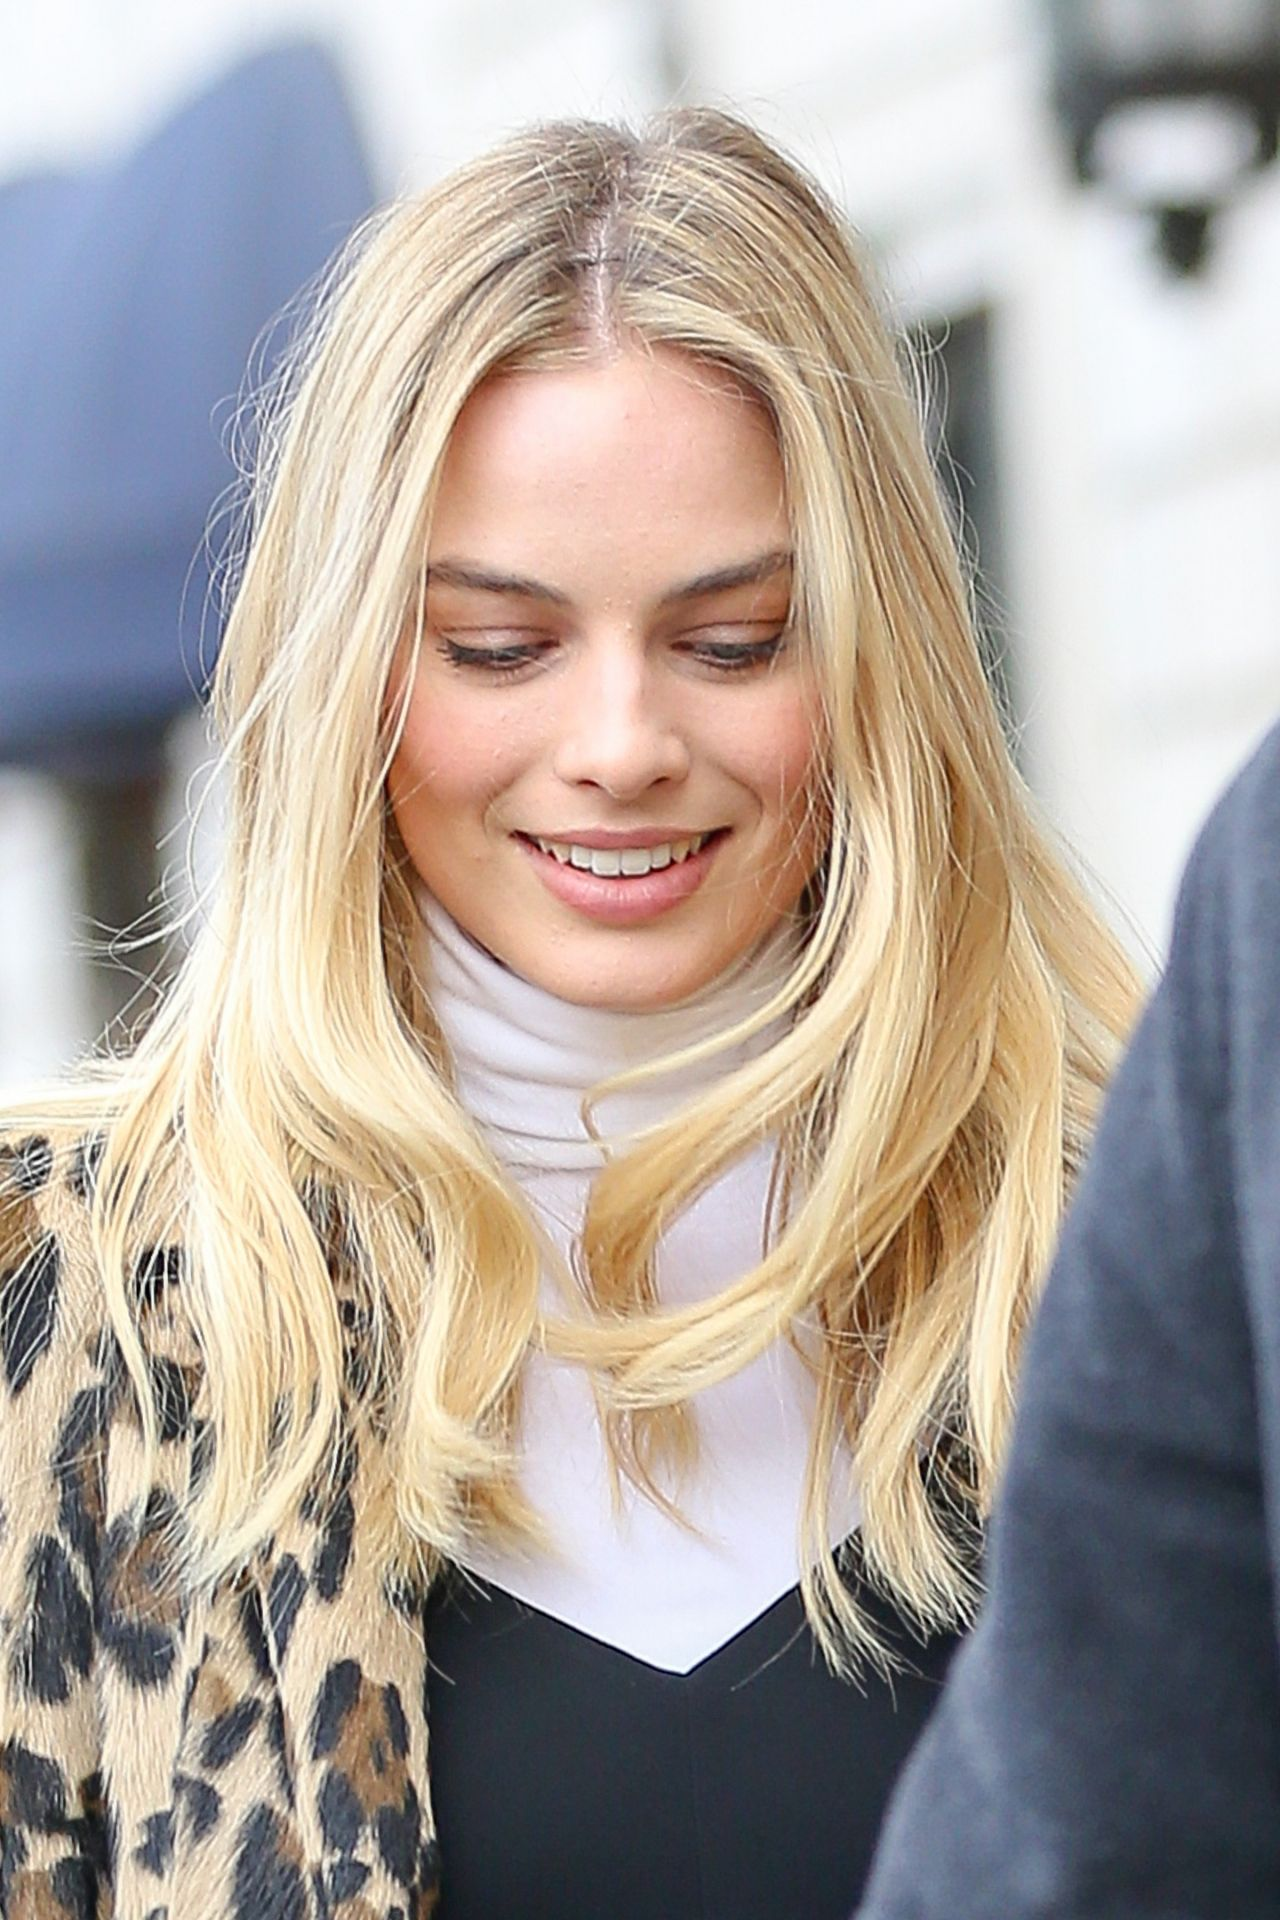 margot robbie - photo #46